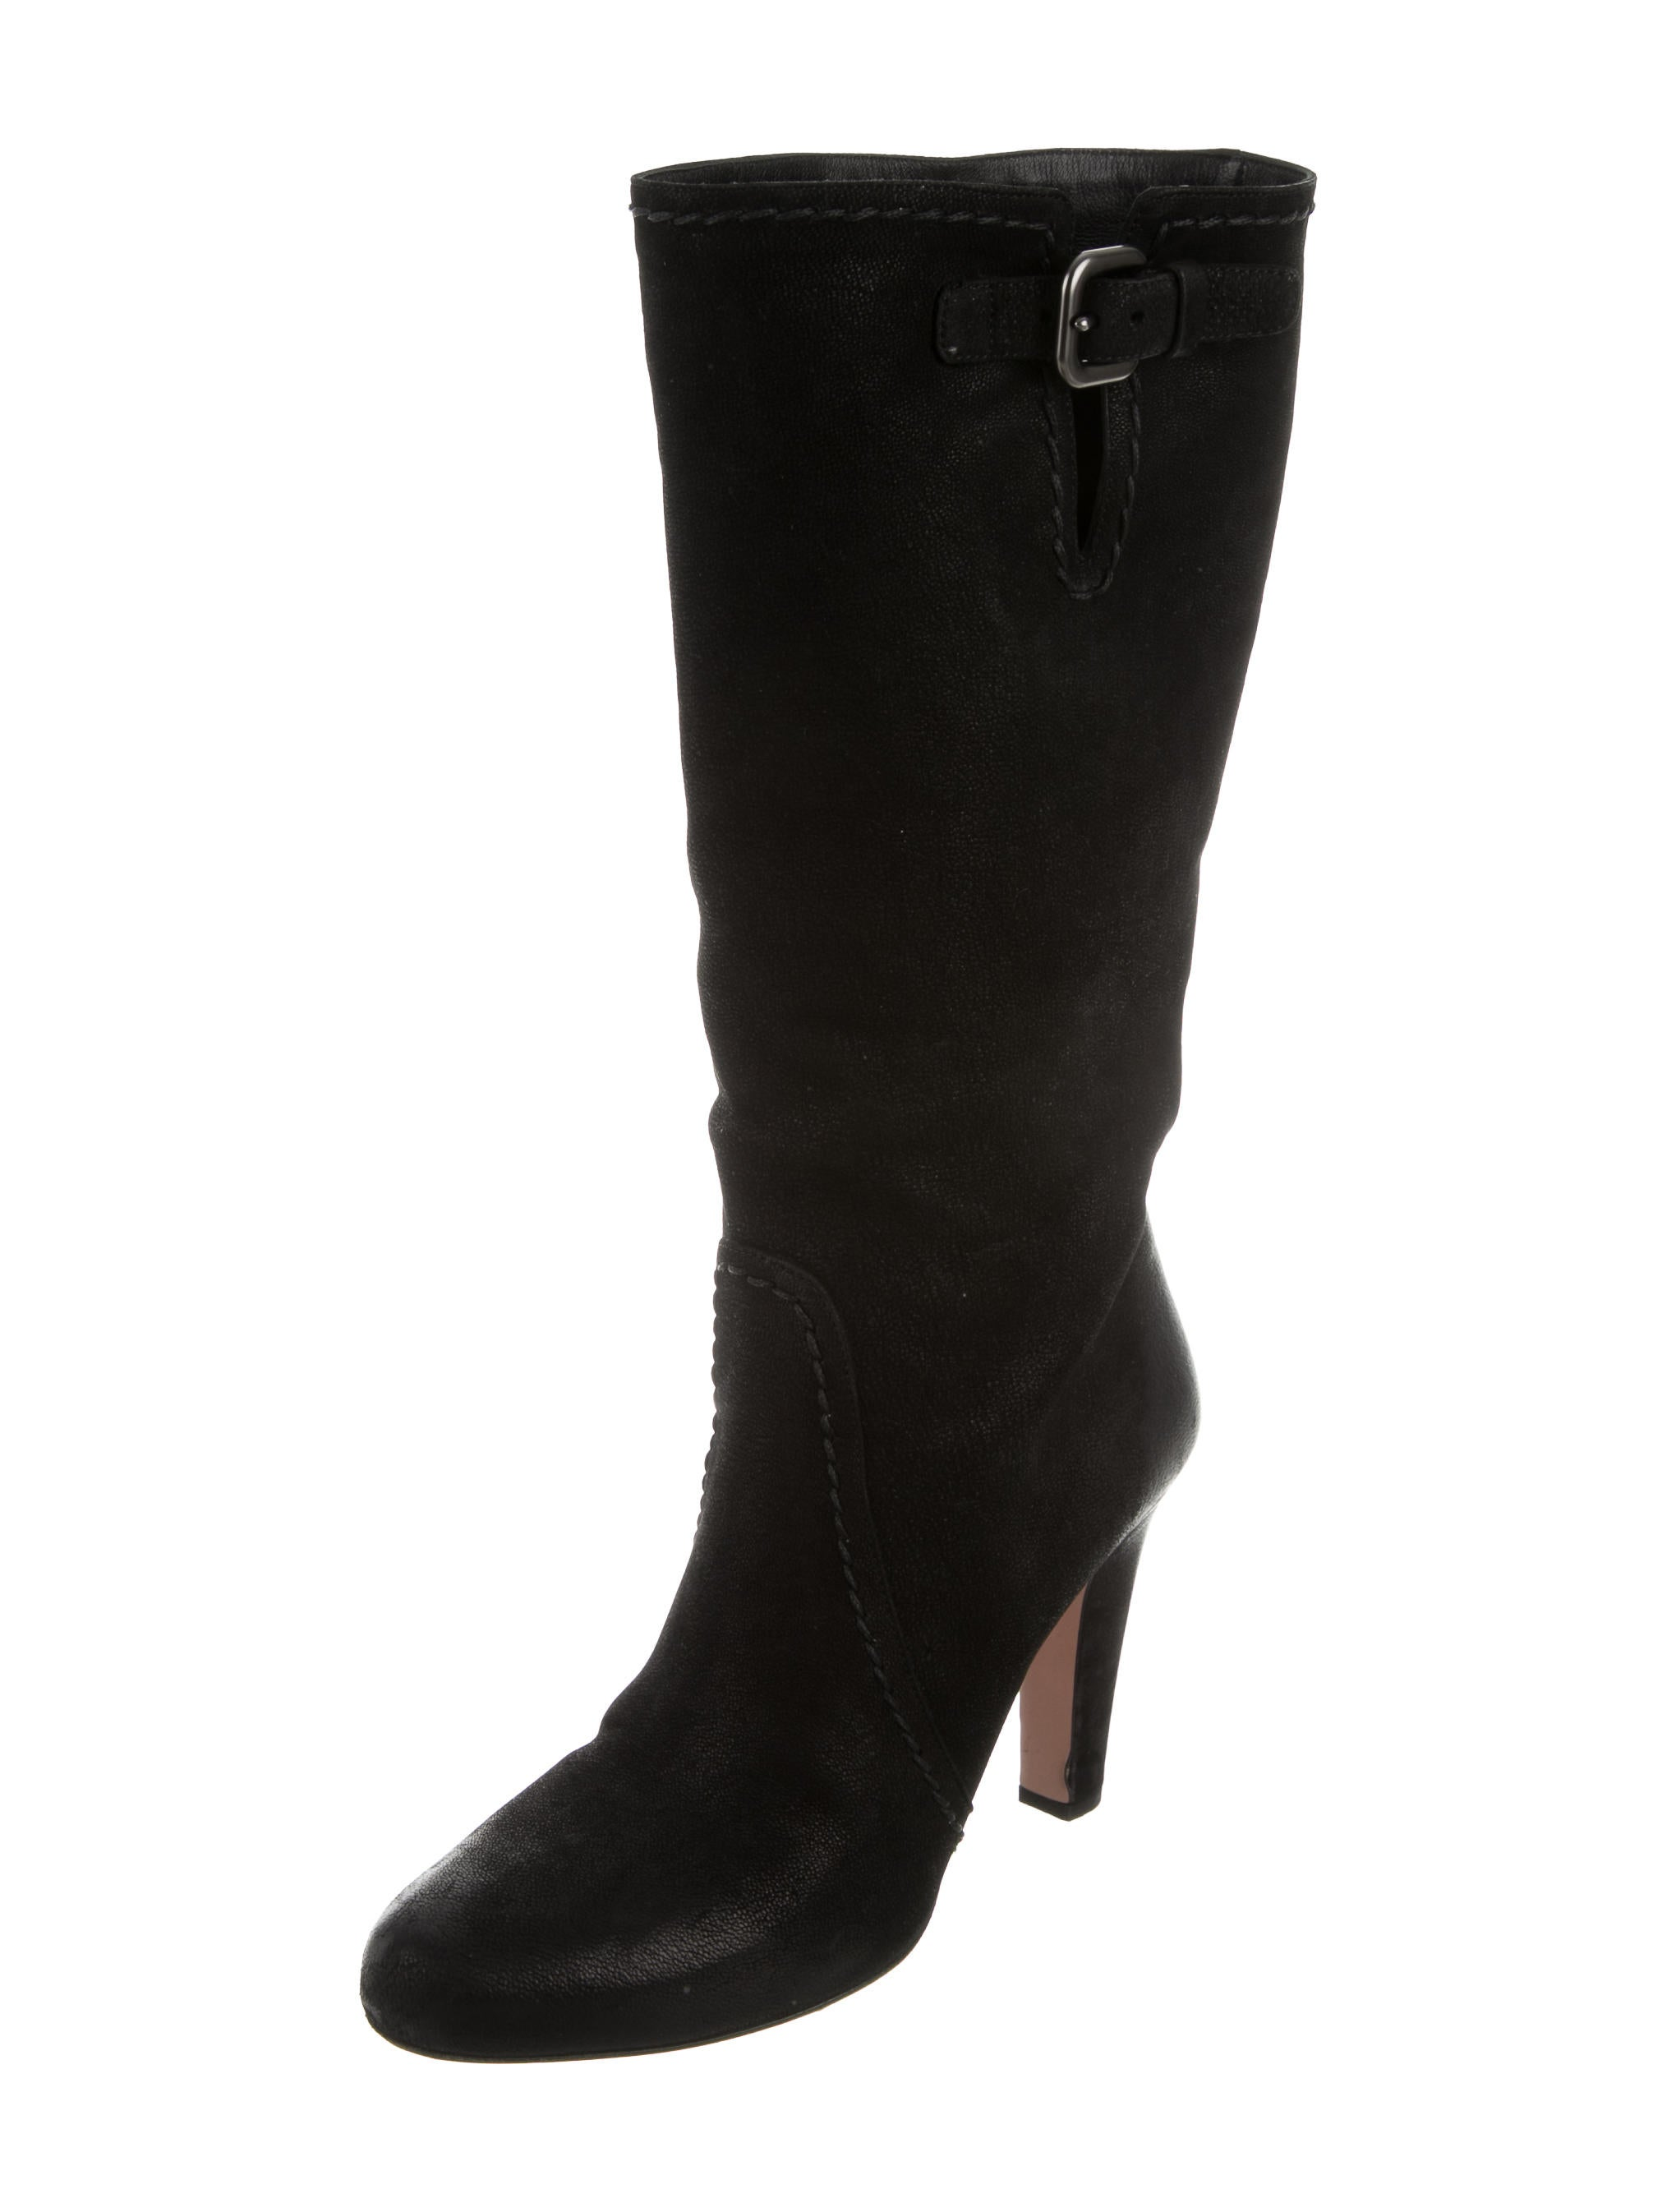 prada mid calf suede boots shoes pra131709 the realreal